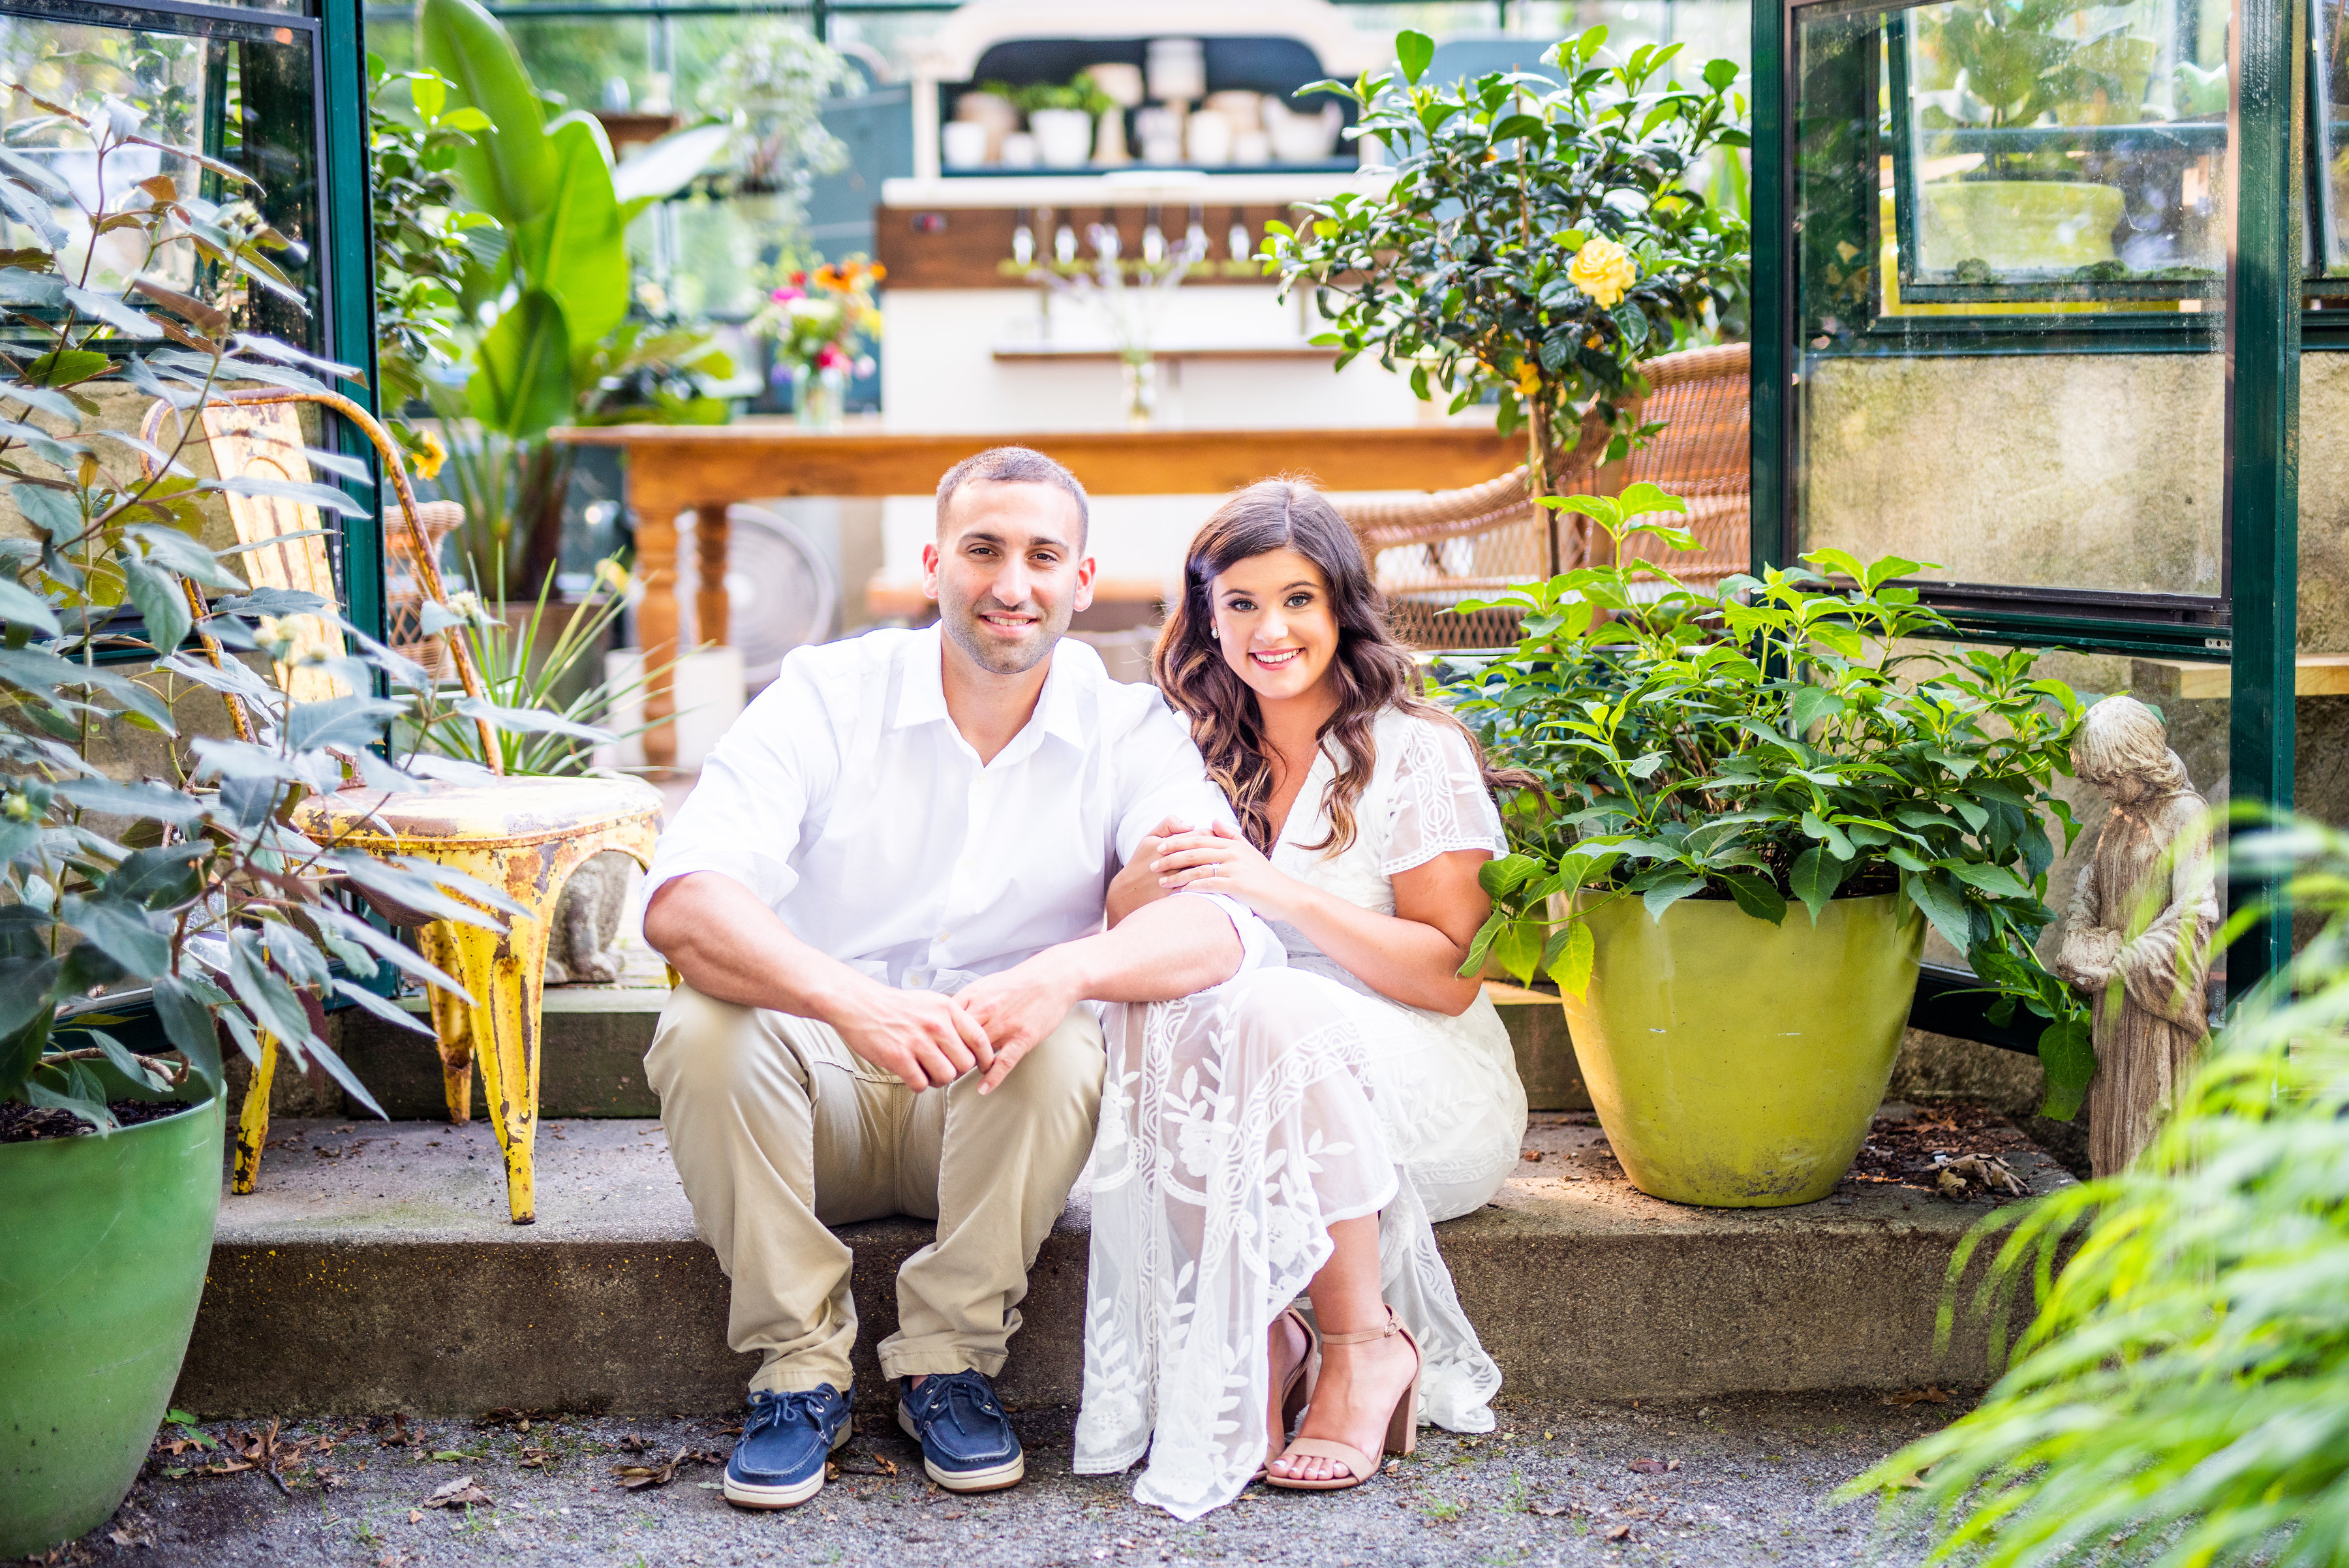 Calverton Engagement Shoot | Engagement Shoot at Home | Rustic Farrm Kitchen Engagement Shoot | North Forrk Wedding Photographer19